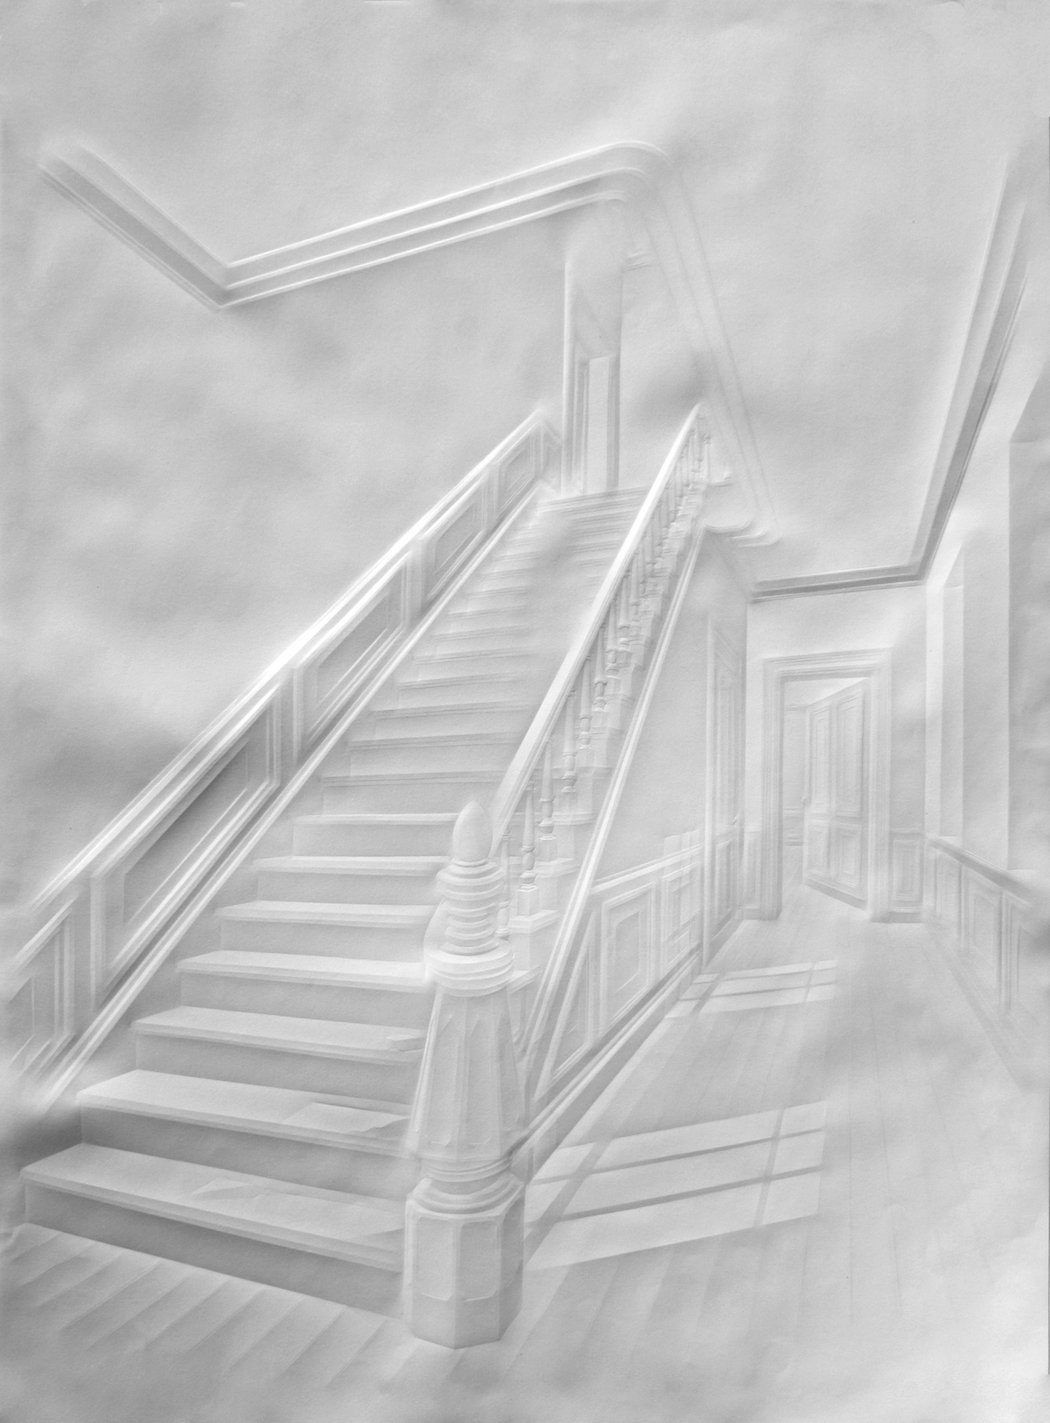 simonschubert(stairs with figure), 2015, 100cm x 70cm